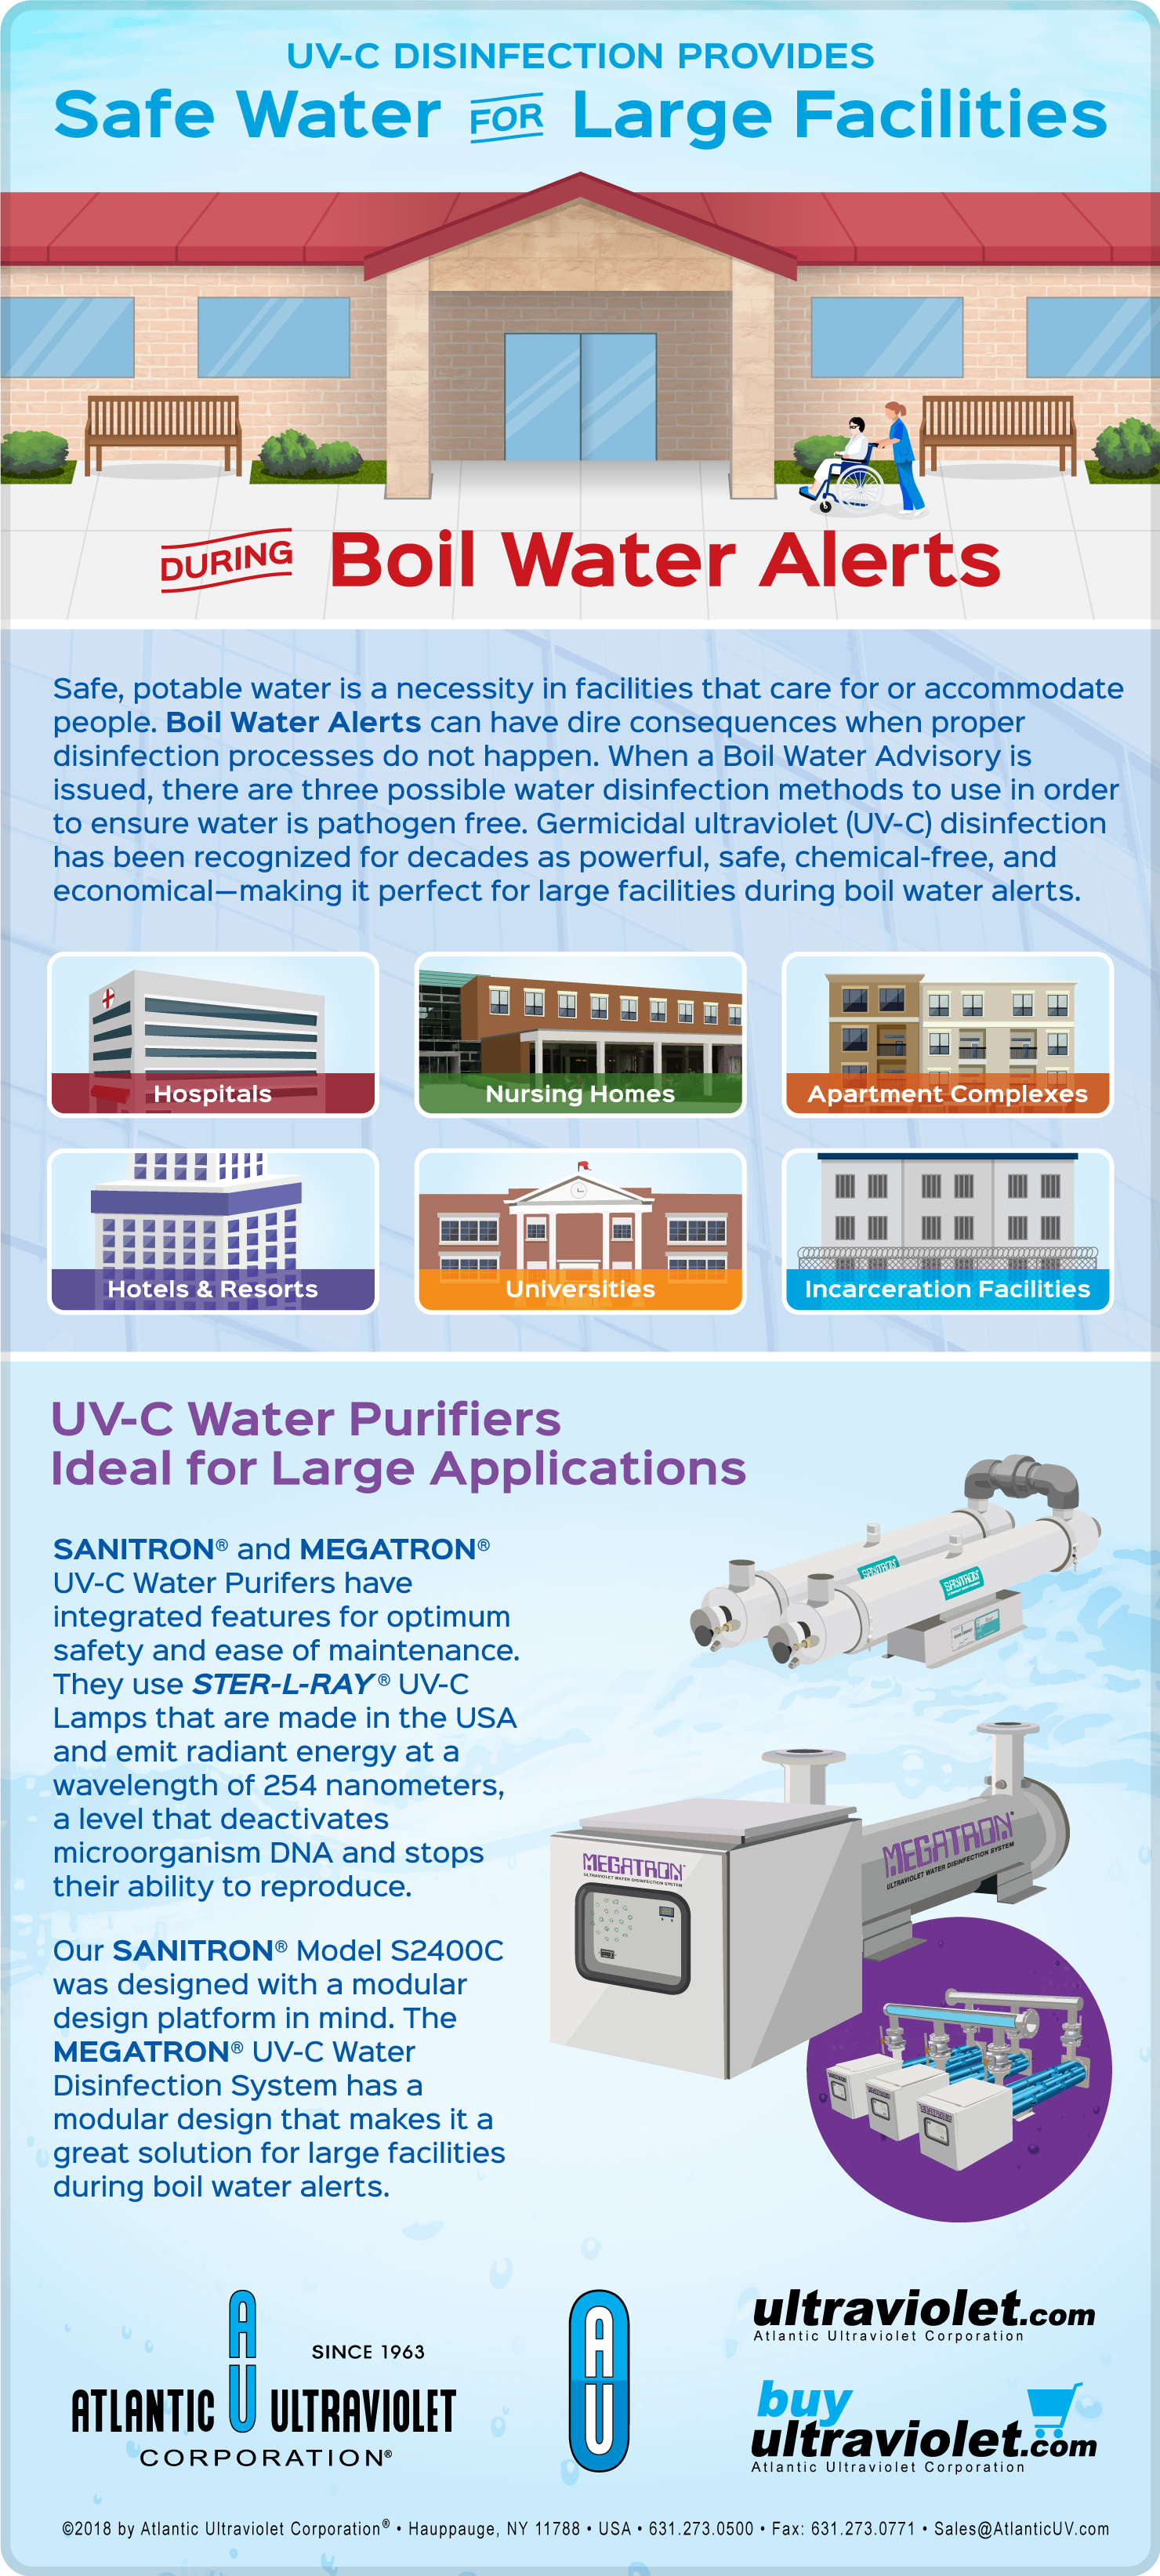 UV-C Provides Safe Water for Large Facilities During Boil Water Alerts - Infographic